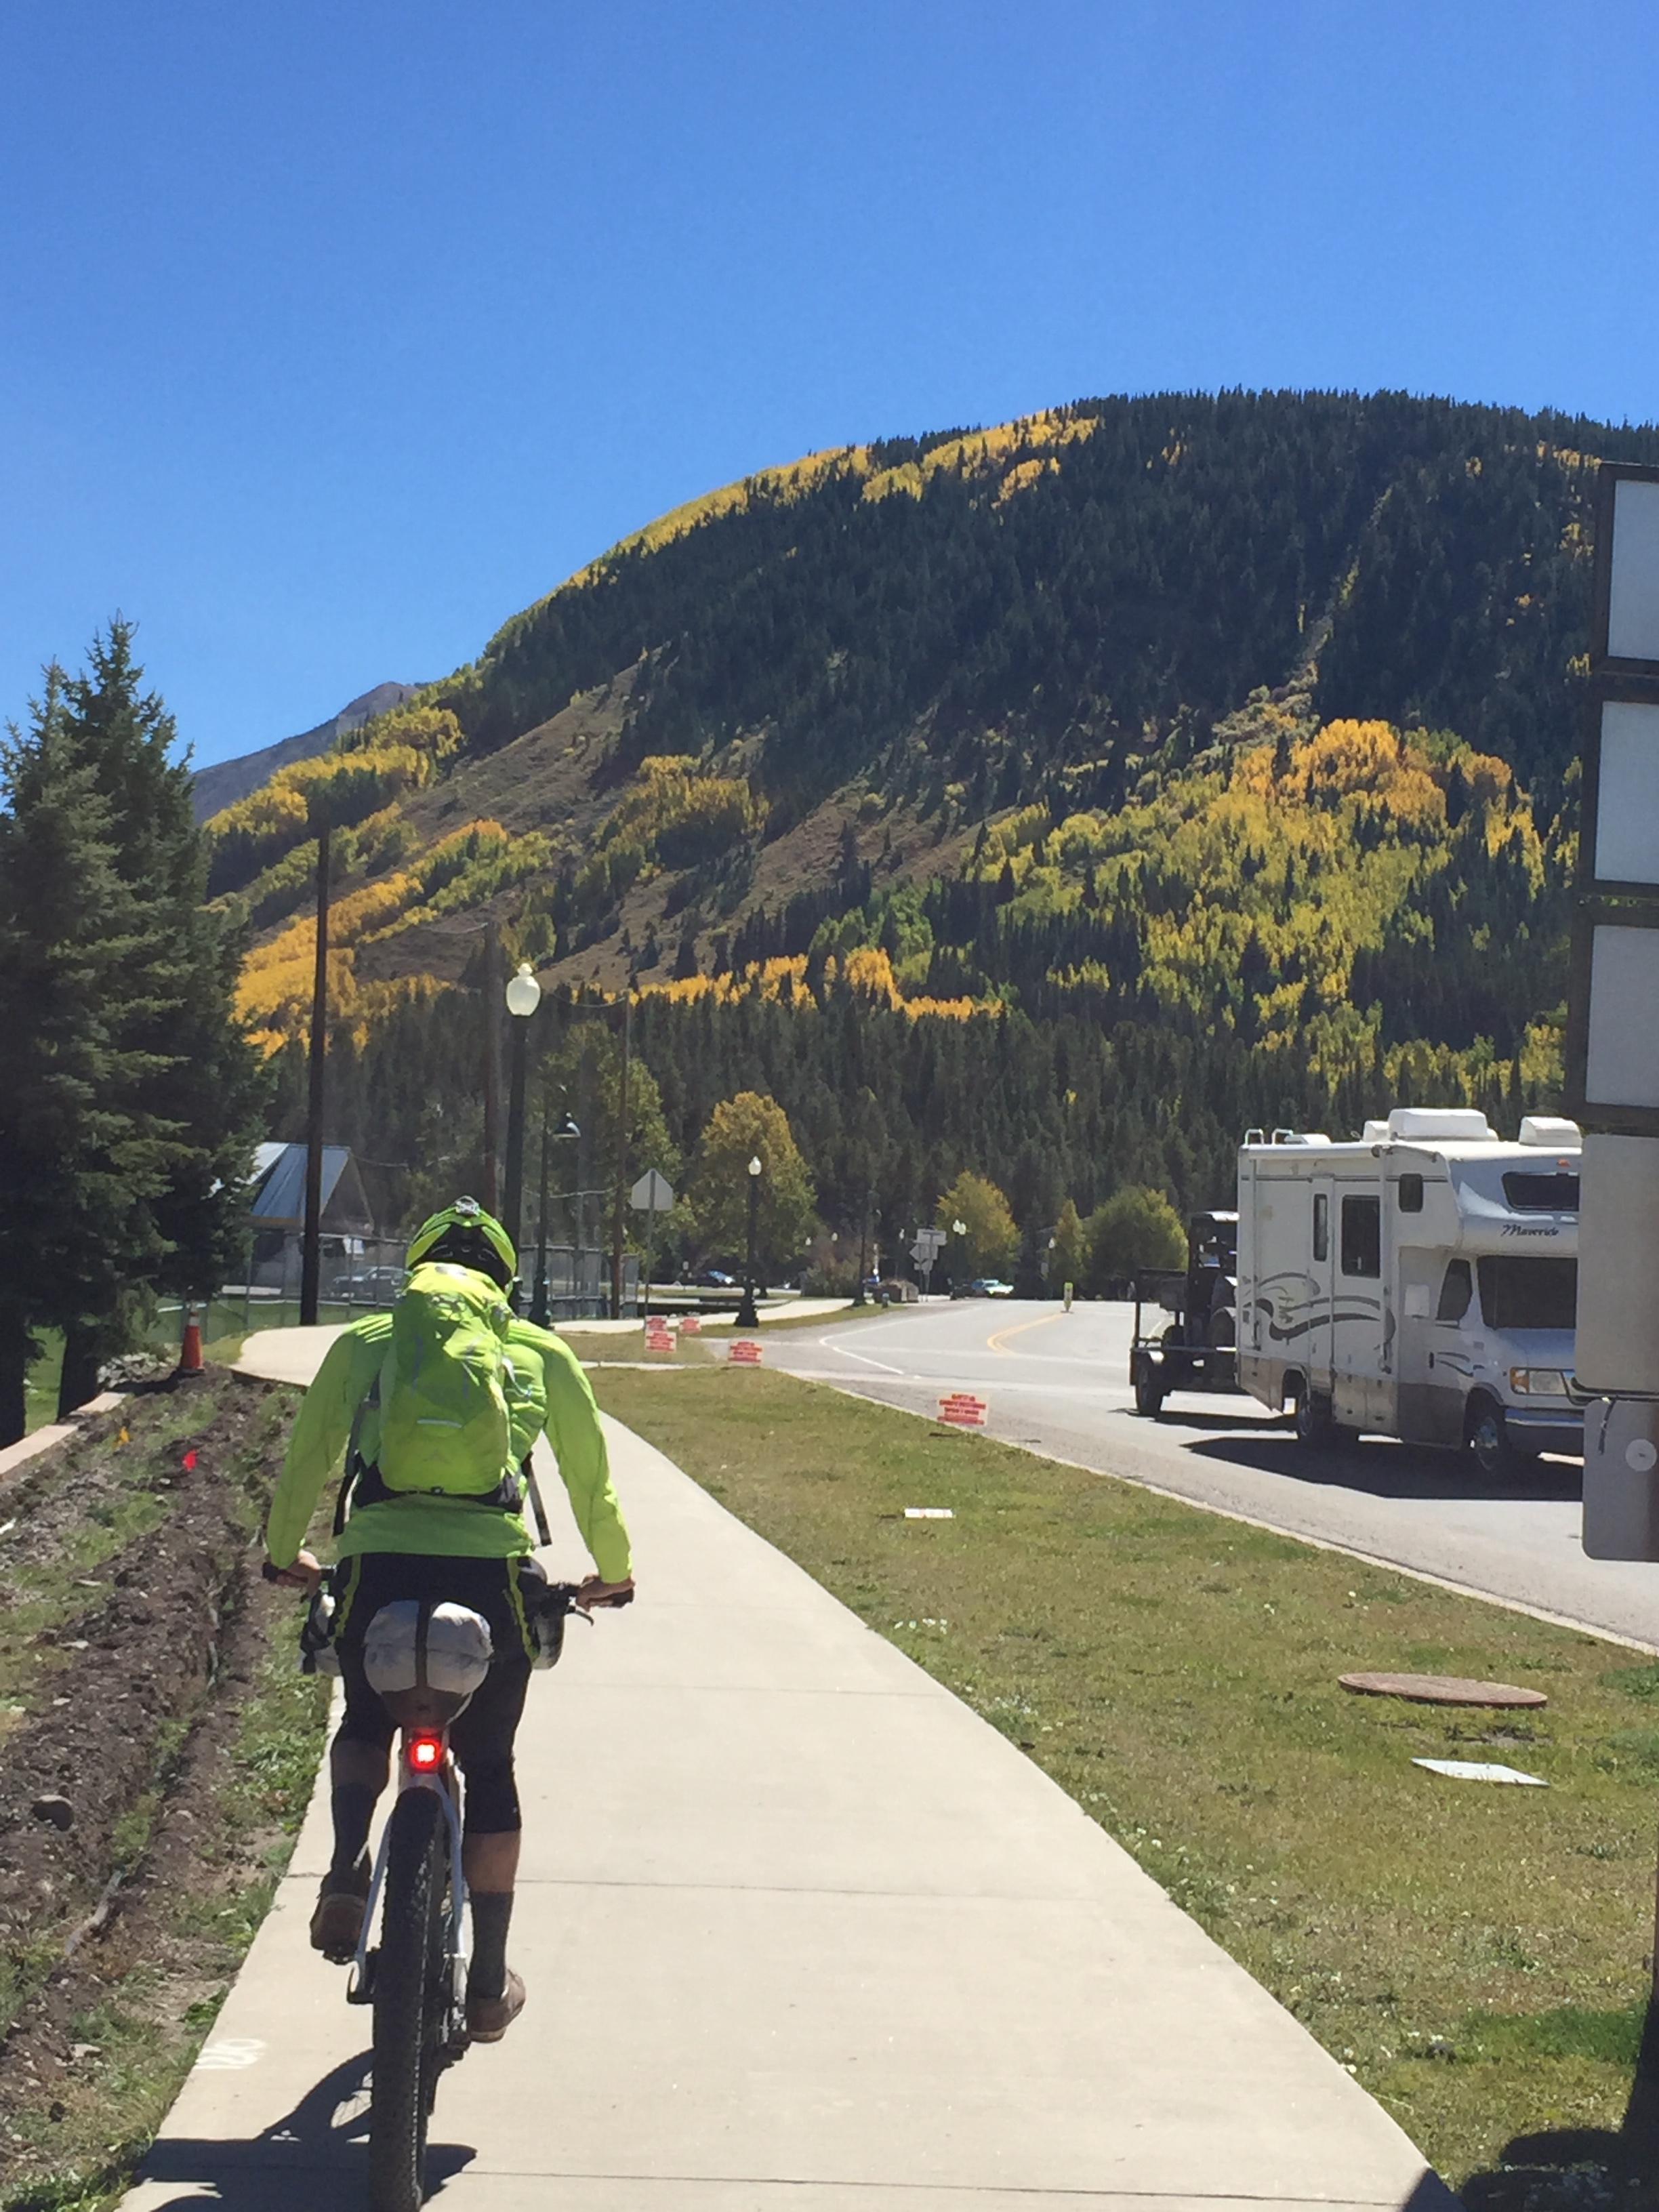 Riding through Crested Butte